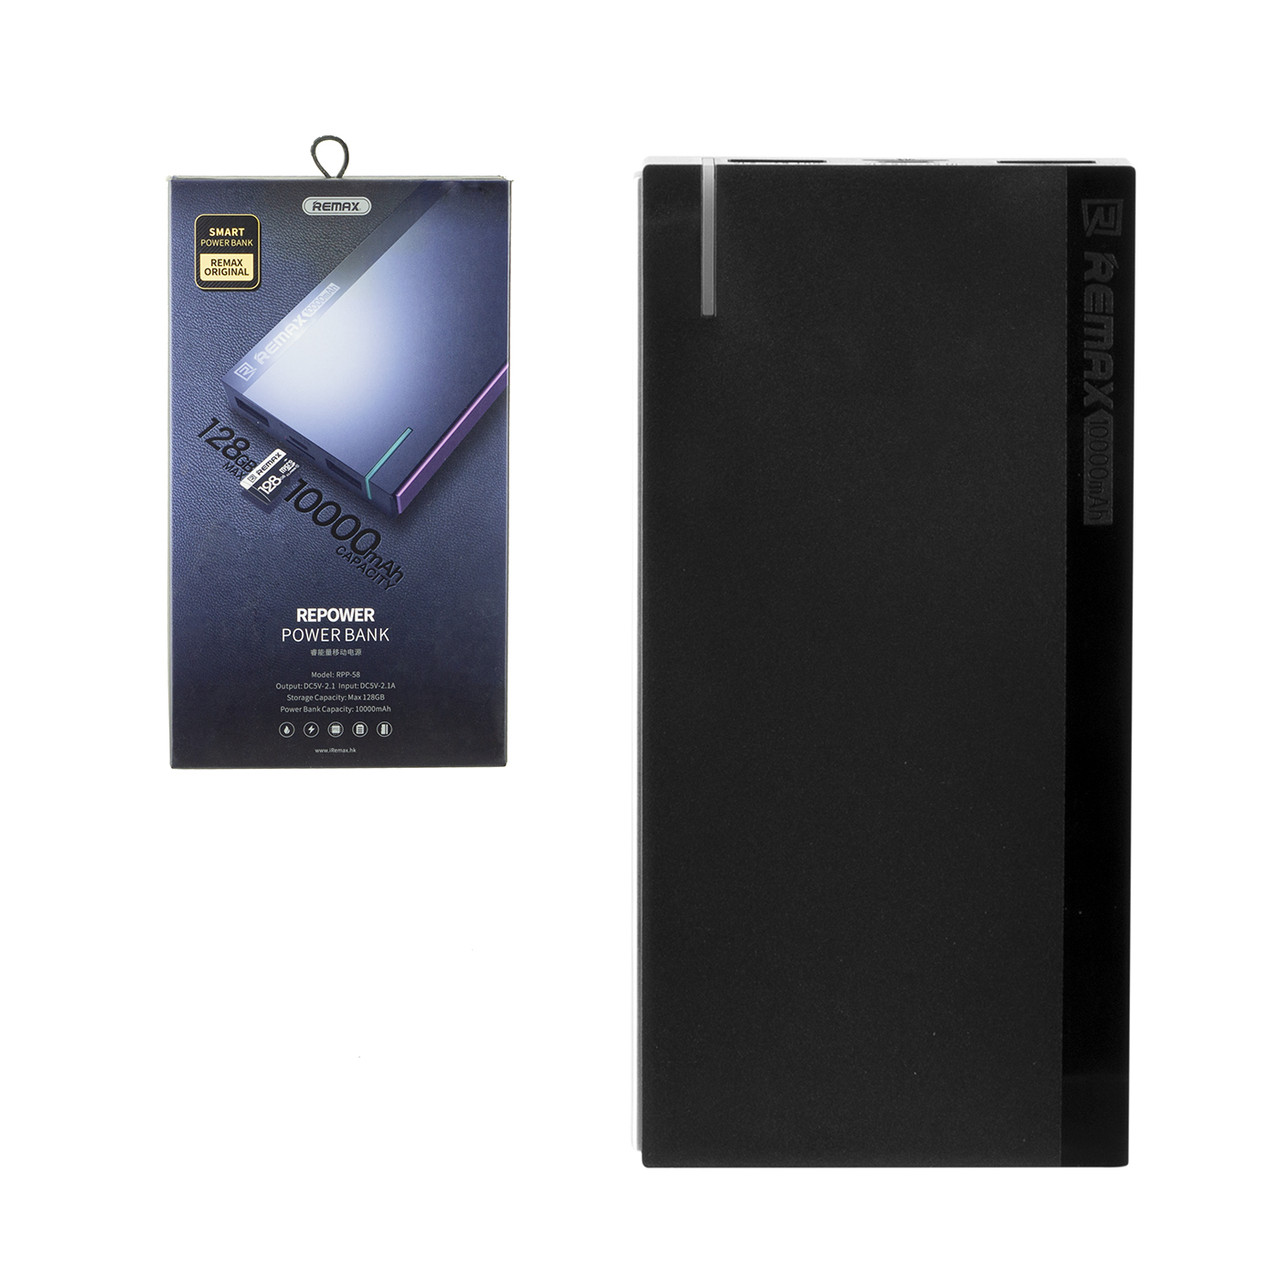 Power bank Remax RPP-58 10000mAh 2XUSB micro SD card slot Black